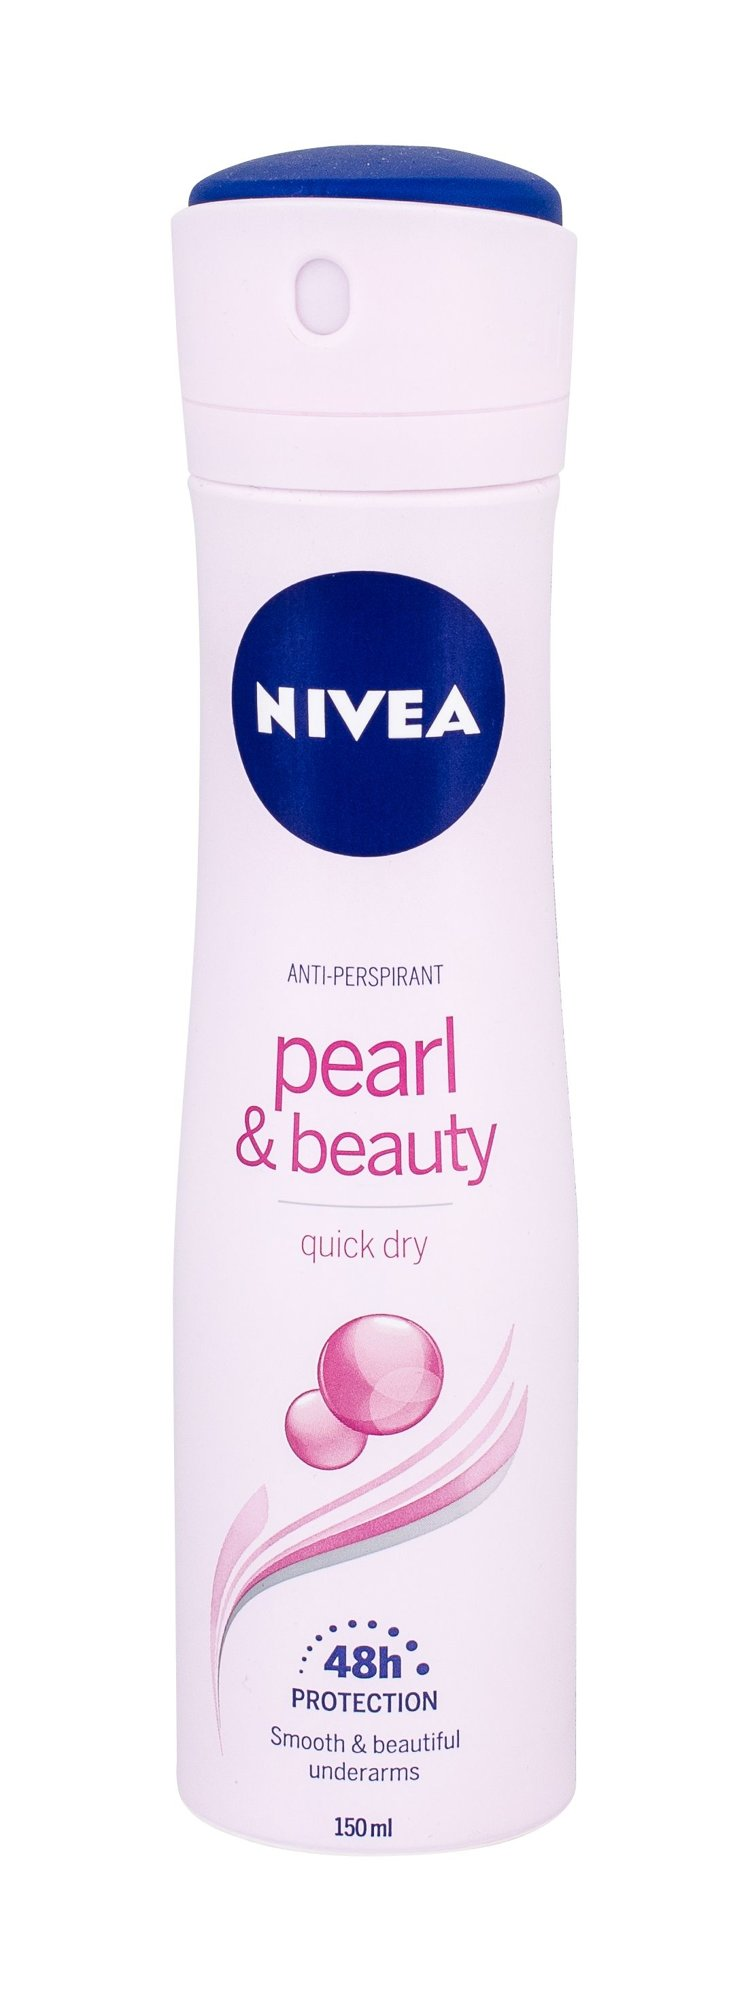 Antisperantas Nivea Pearl & Beauty